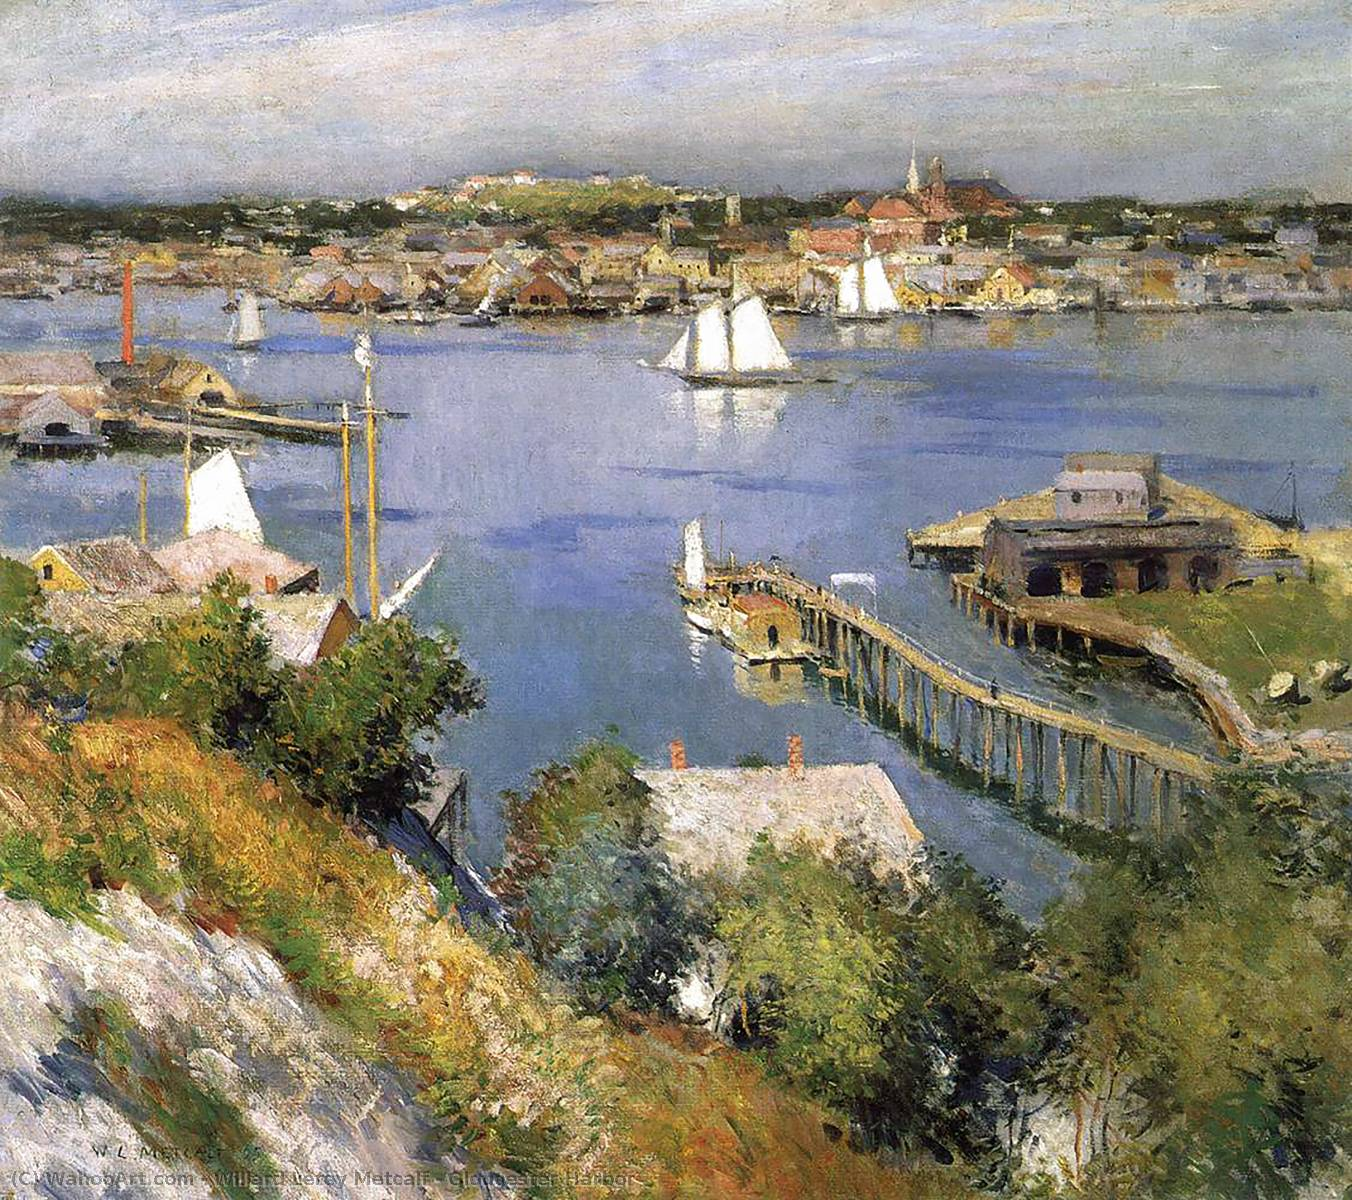 Order Reproductions | Gloucester Harbor by Willard Leroy Metcalf | Most-Famous-Paintings.com